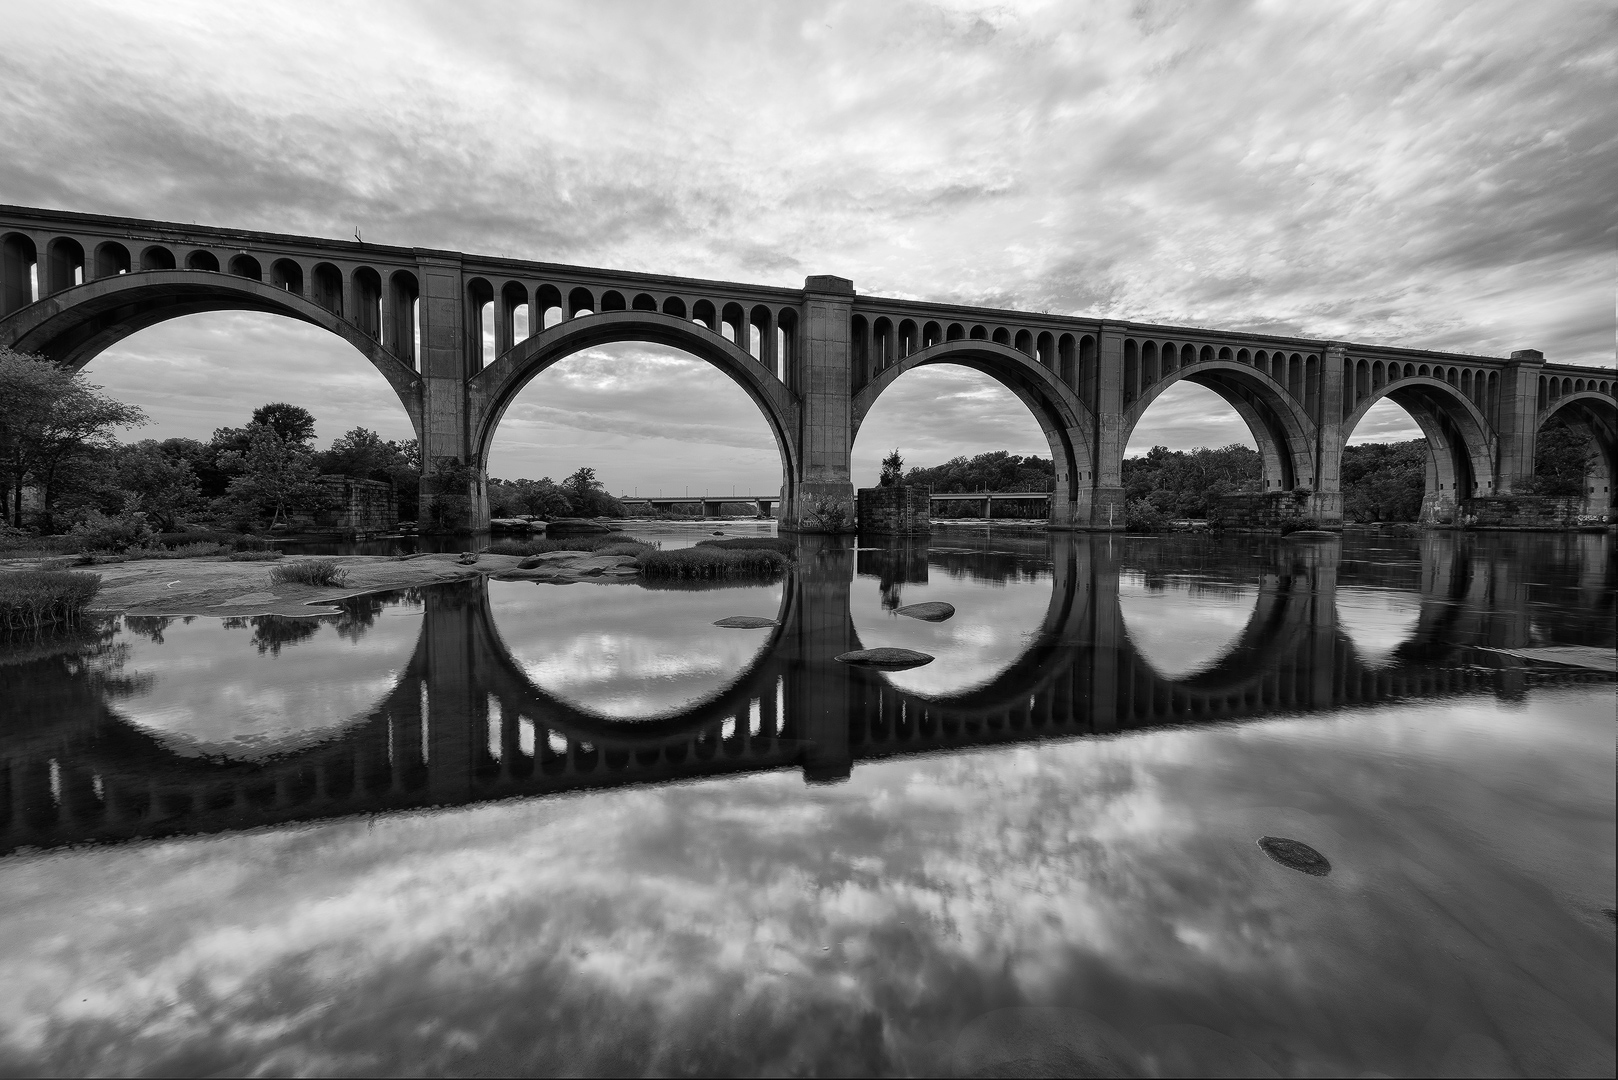 Virginia, Richmond, River, Railroad, Bridge, Black and White, Arch, Reflection, Landscape, photo